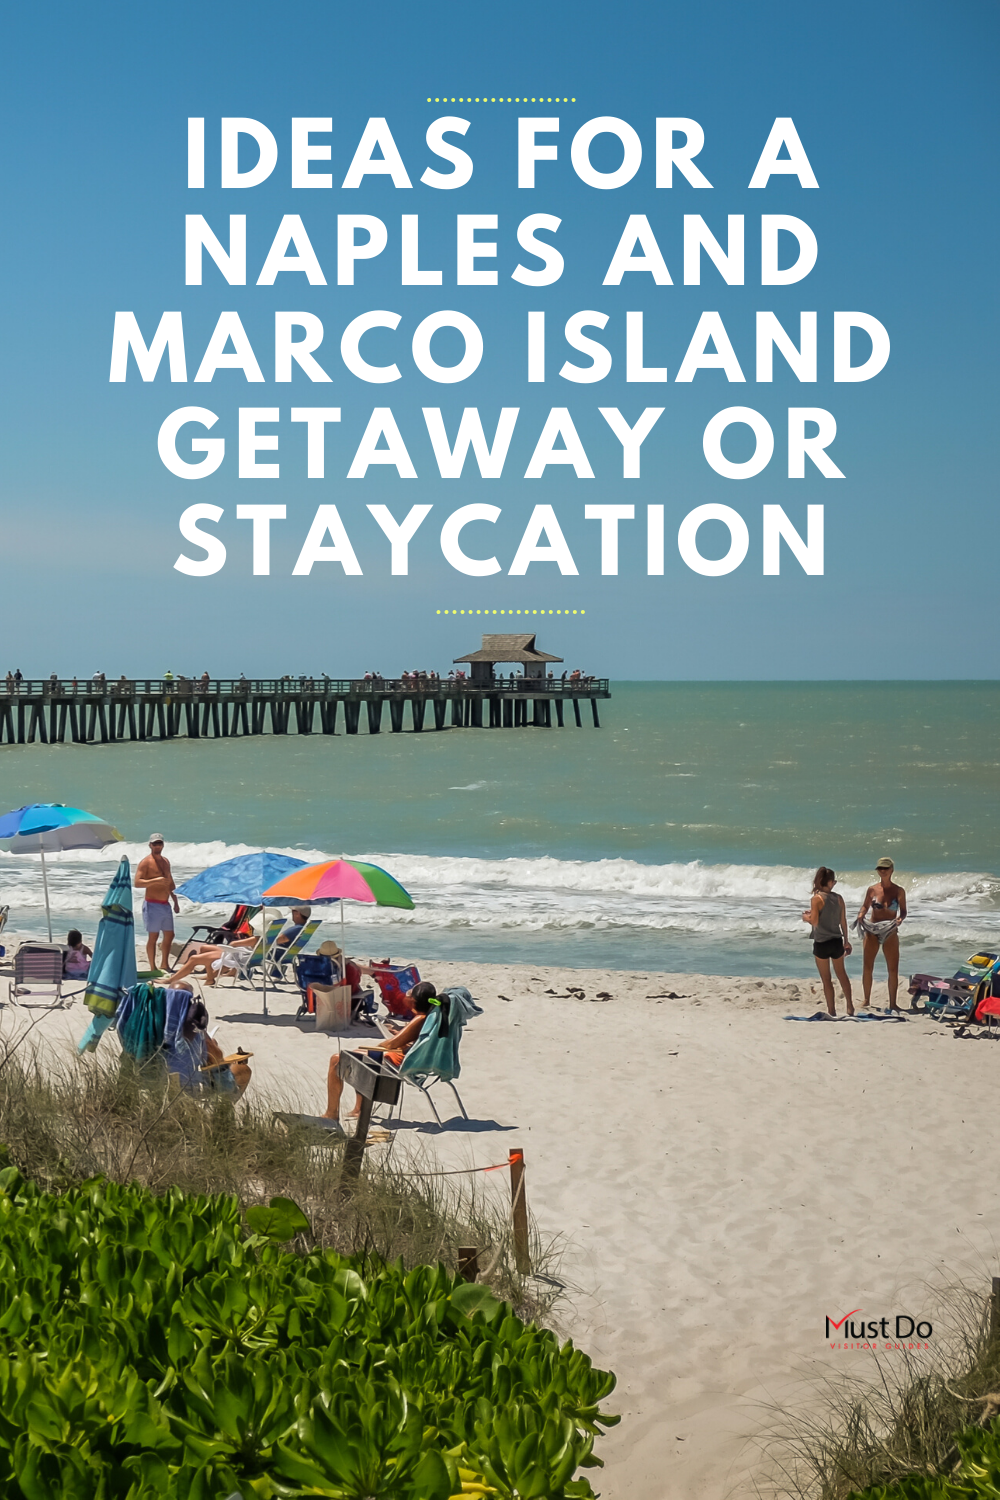 Ideas for a Naples and Marco Island Getaway or Staycation. Naples and Marco Island getaway or staycation ideas beyond the beach-from budget friendly family activities to outdoor restaurants on the water, to eco-tours and parks. Must Do Visitor Guides | MustDo.com